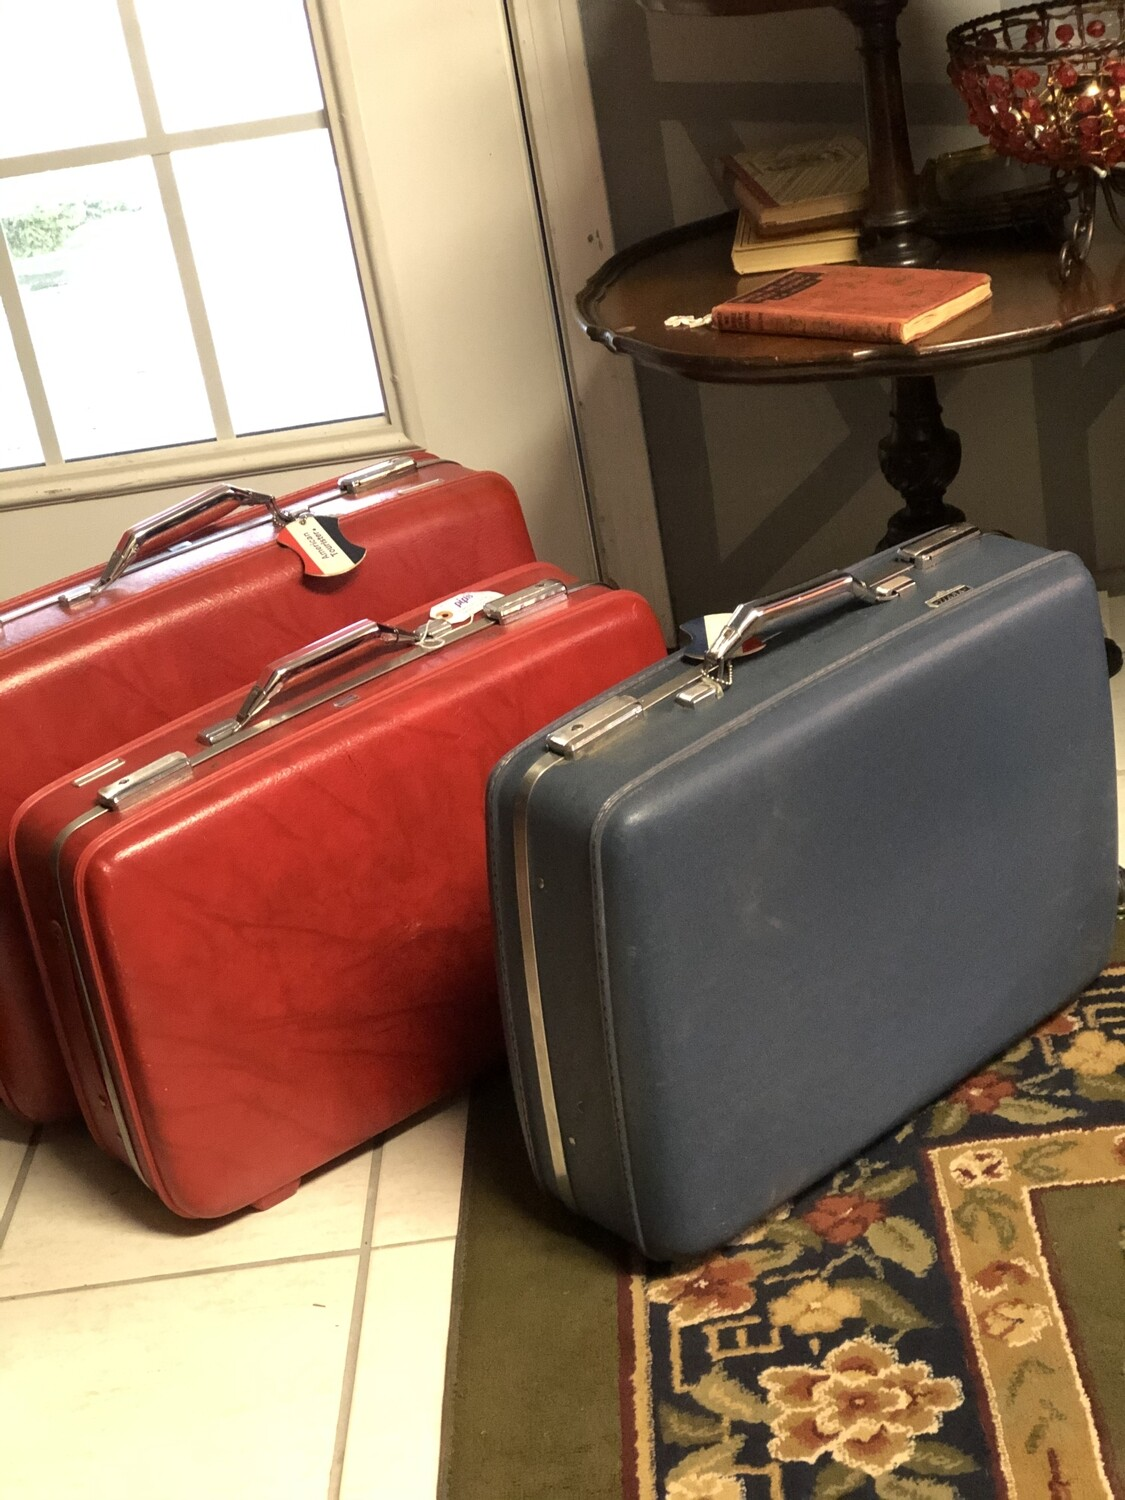 The Traveler - 2 Vintage American Tourister Suitcases